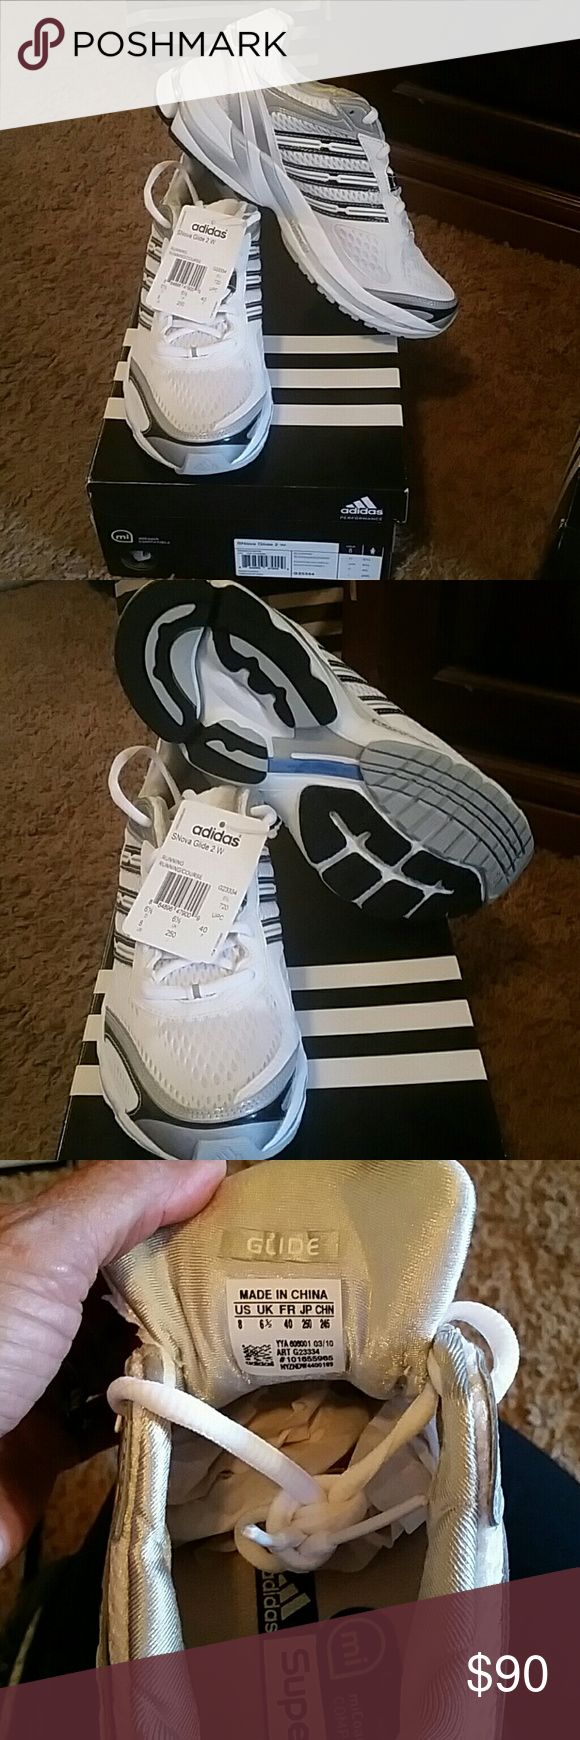 Adidas SNova Glide 2 W Running Shoes Brand new women's running shoe. White with black and silver. Never worn. Adidas Shoes Athletic Shoes